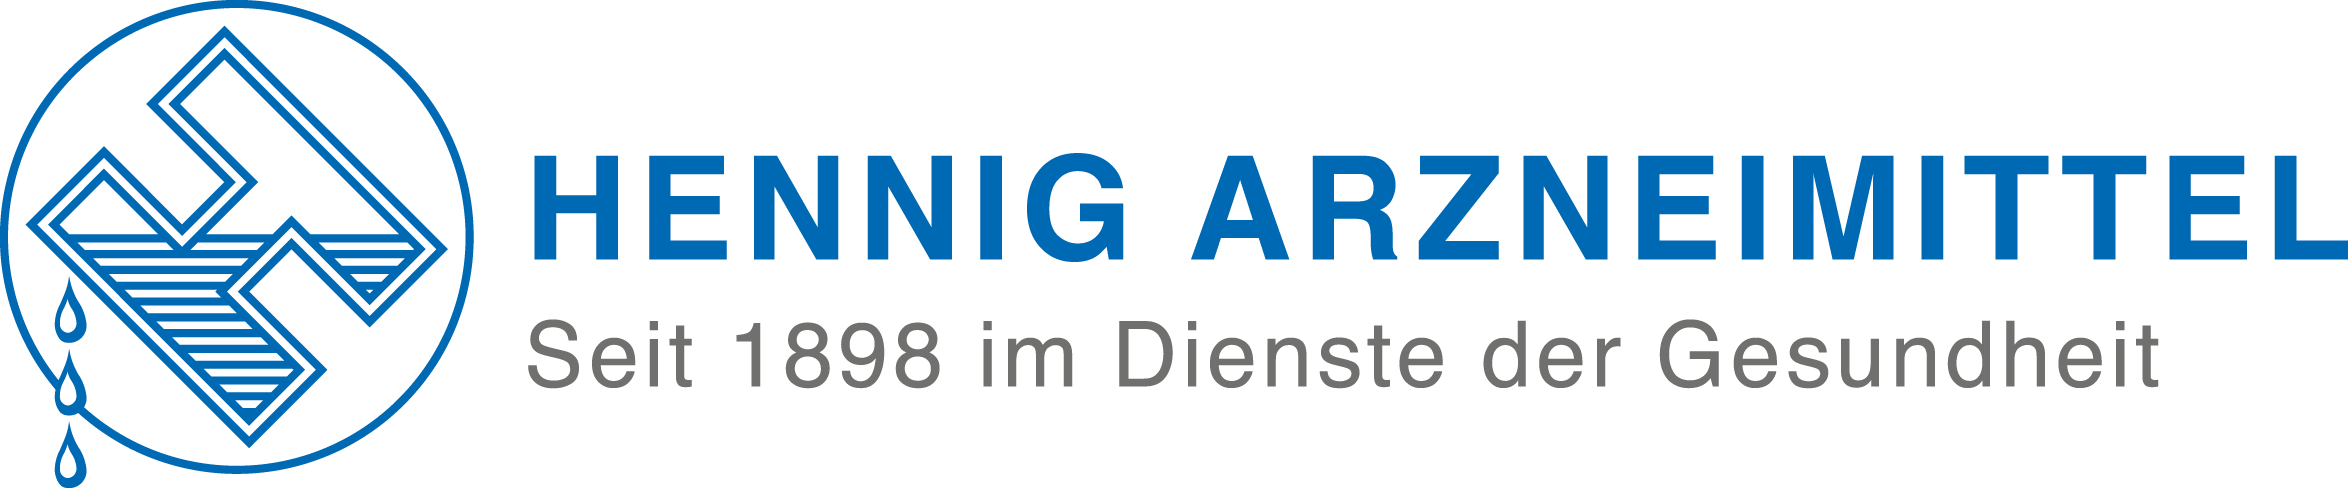 Display of the logo of HENNIG ARZNEIMITTEL GmbH & Co. KG